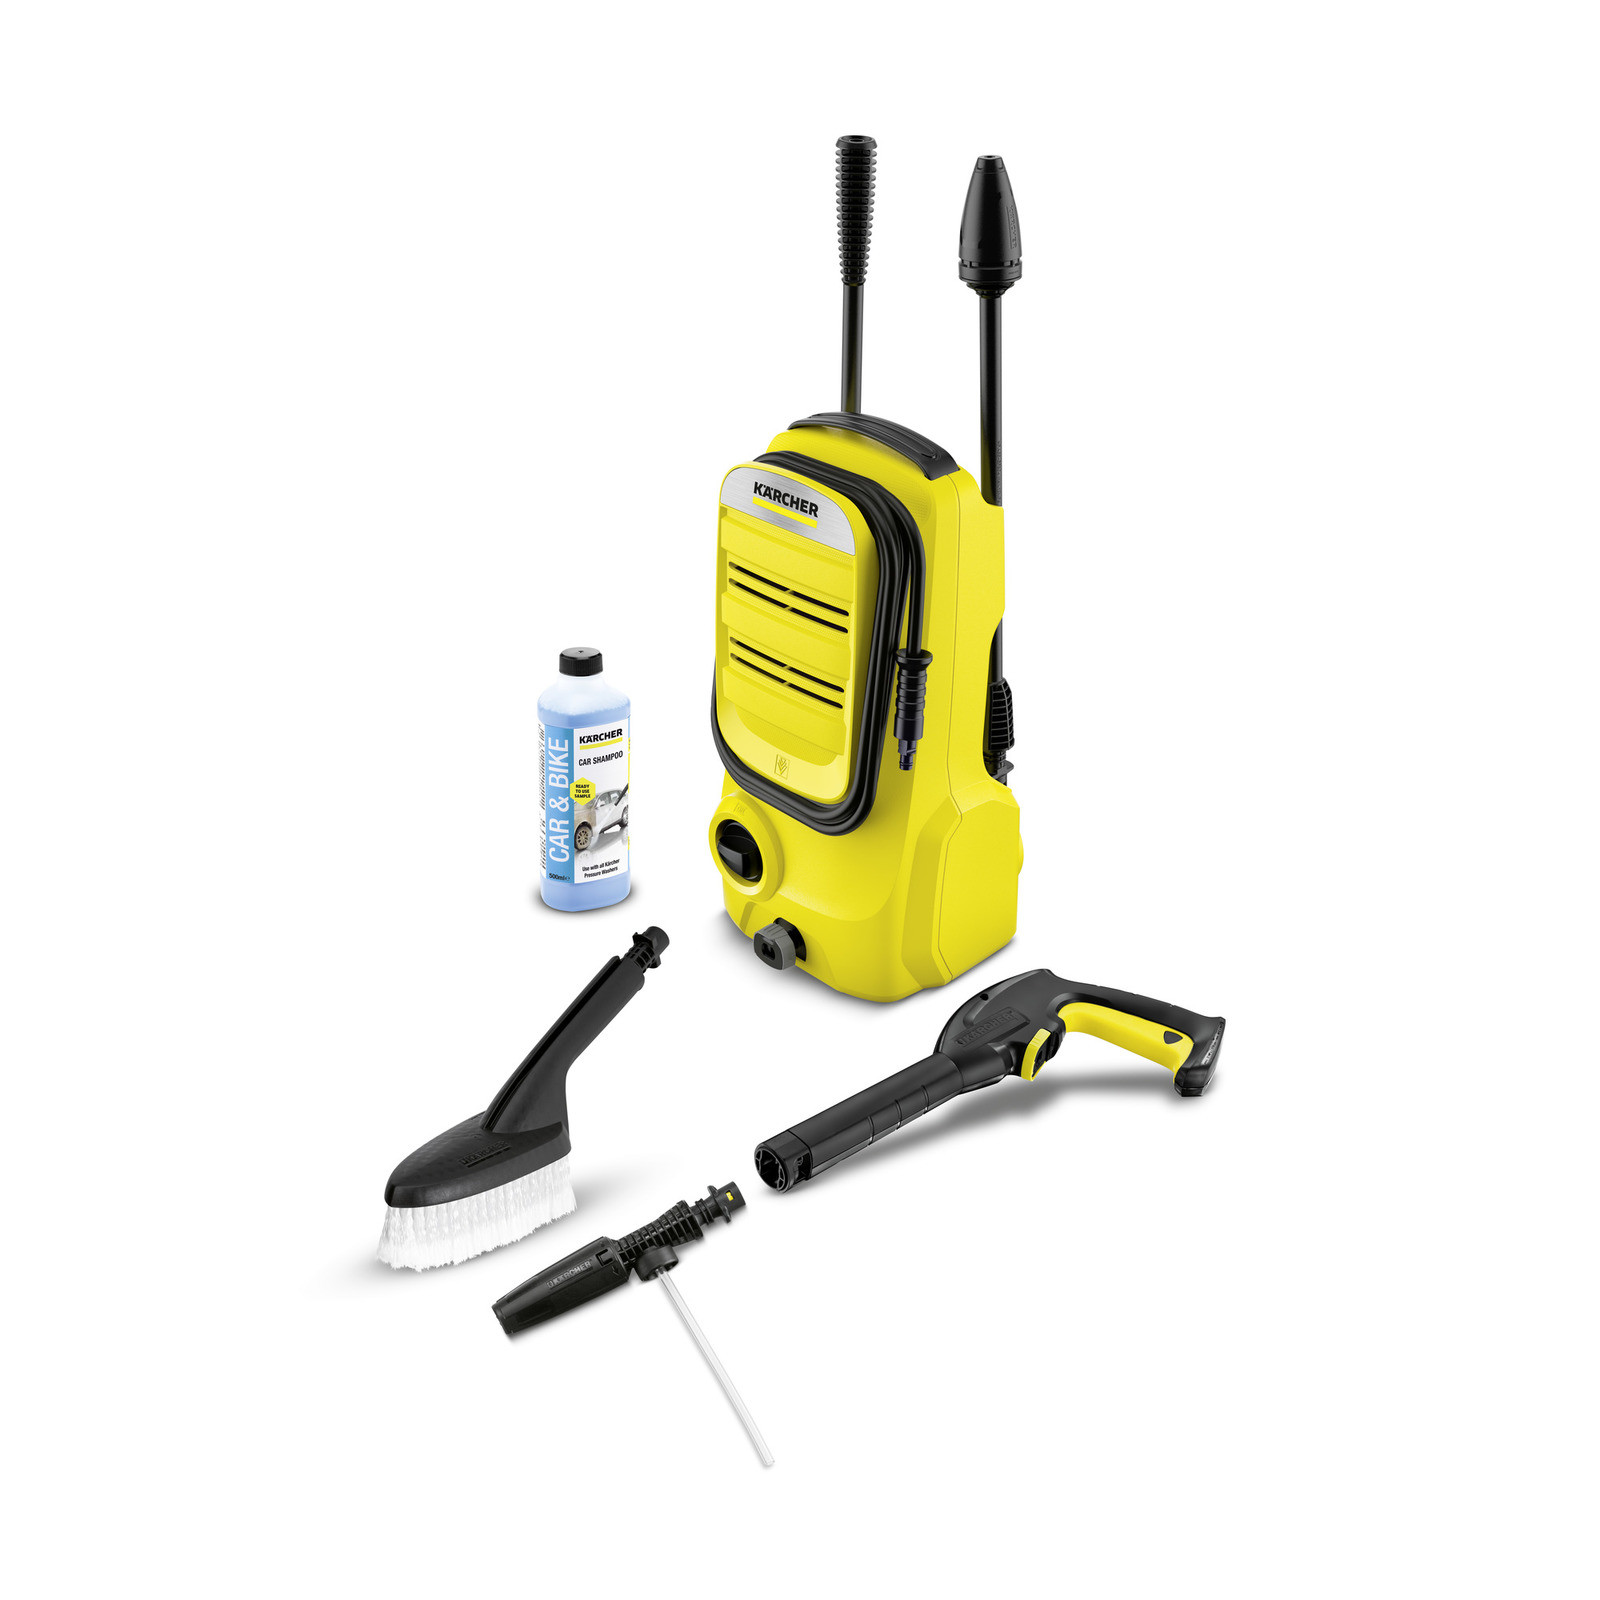 KARCHER 1400Watt High Pressure Washer- K2 Compact Car